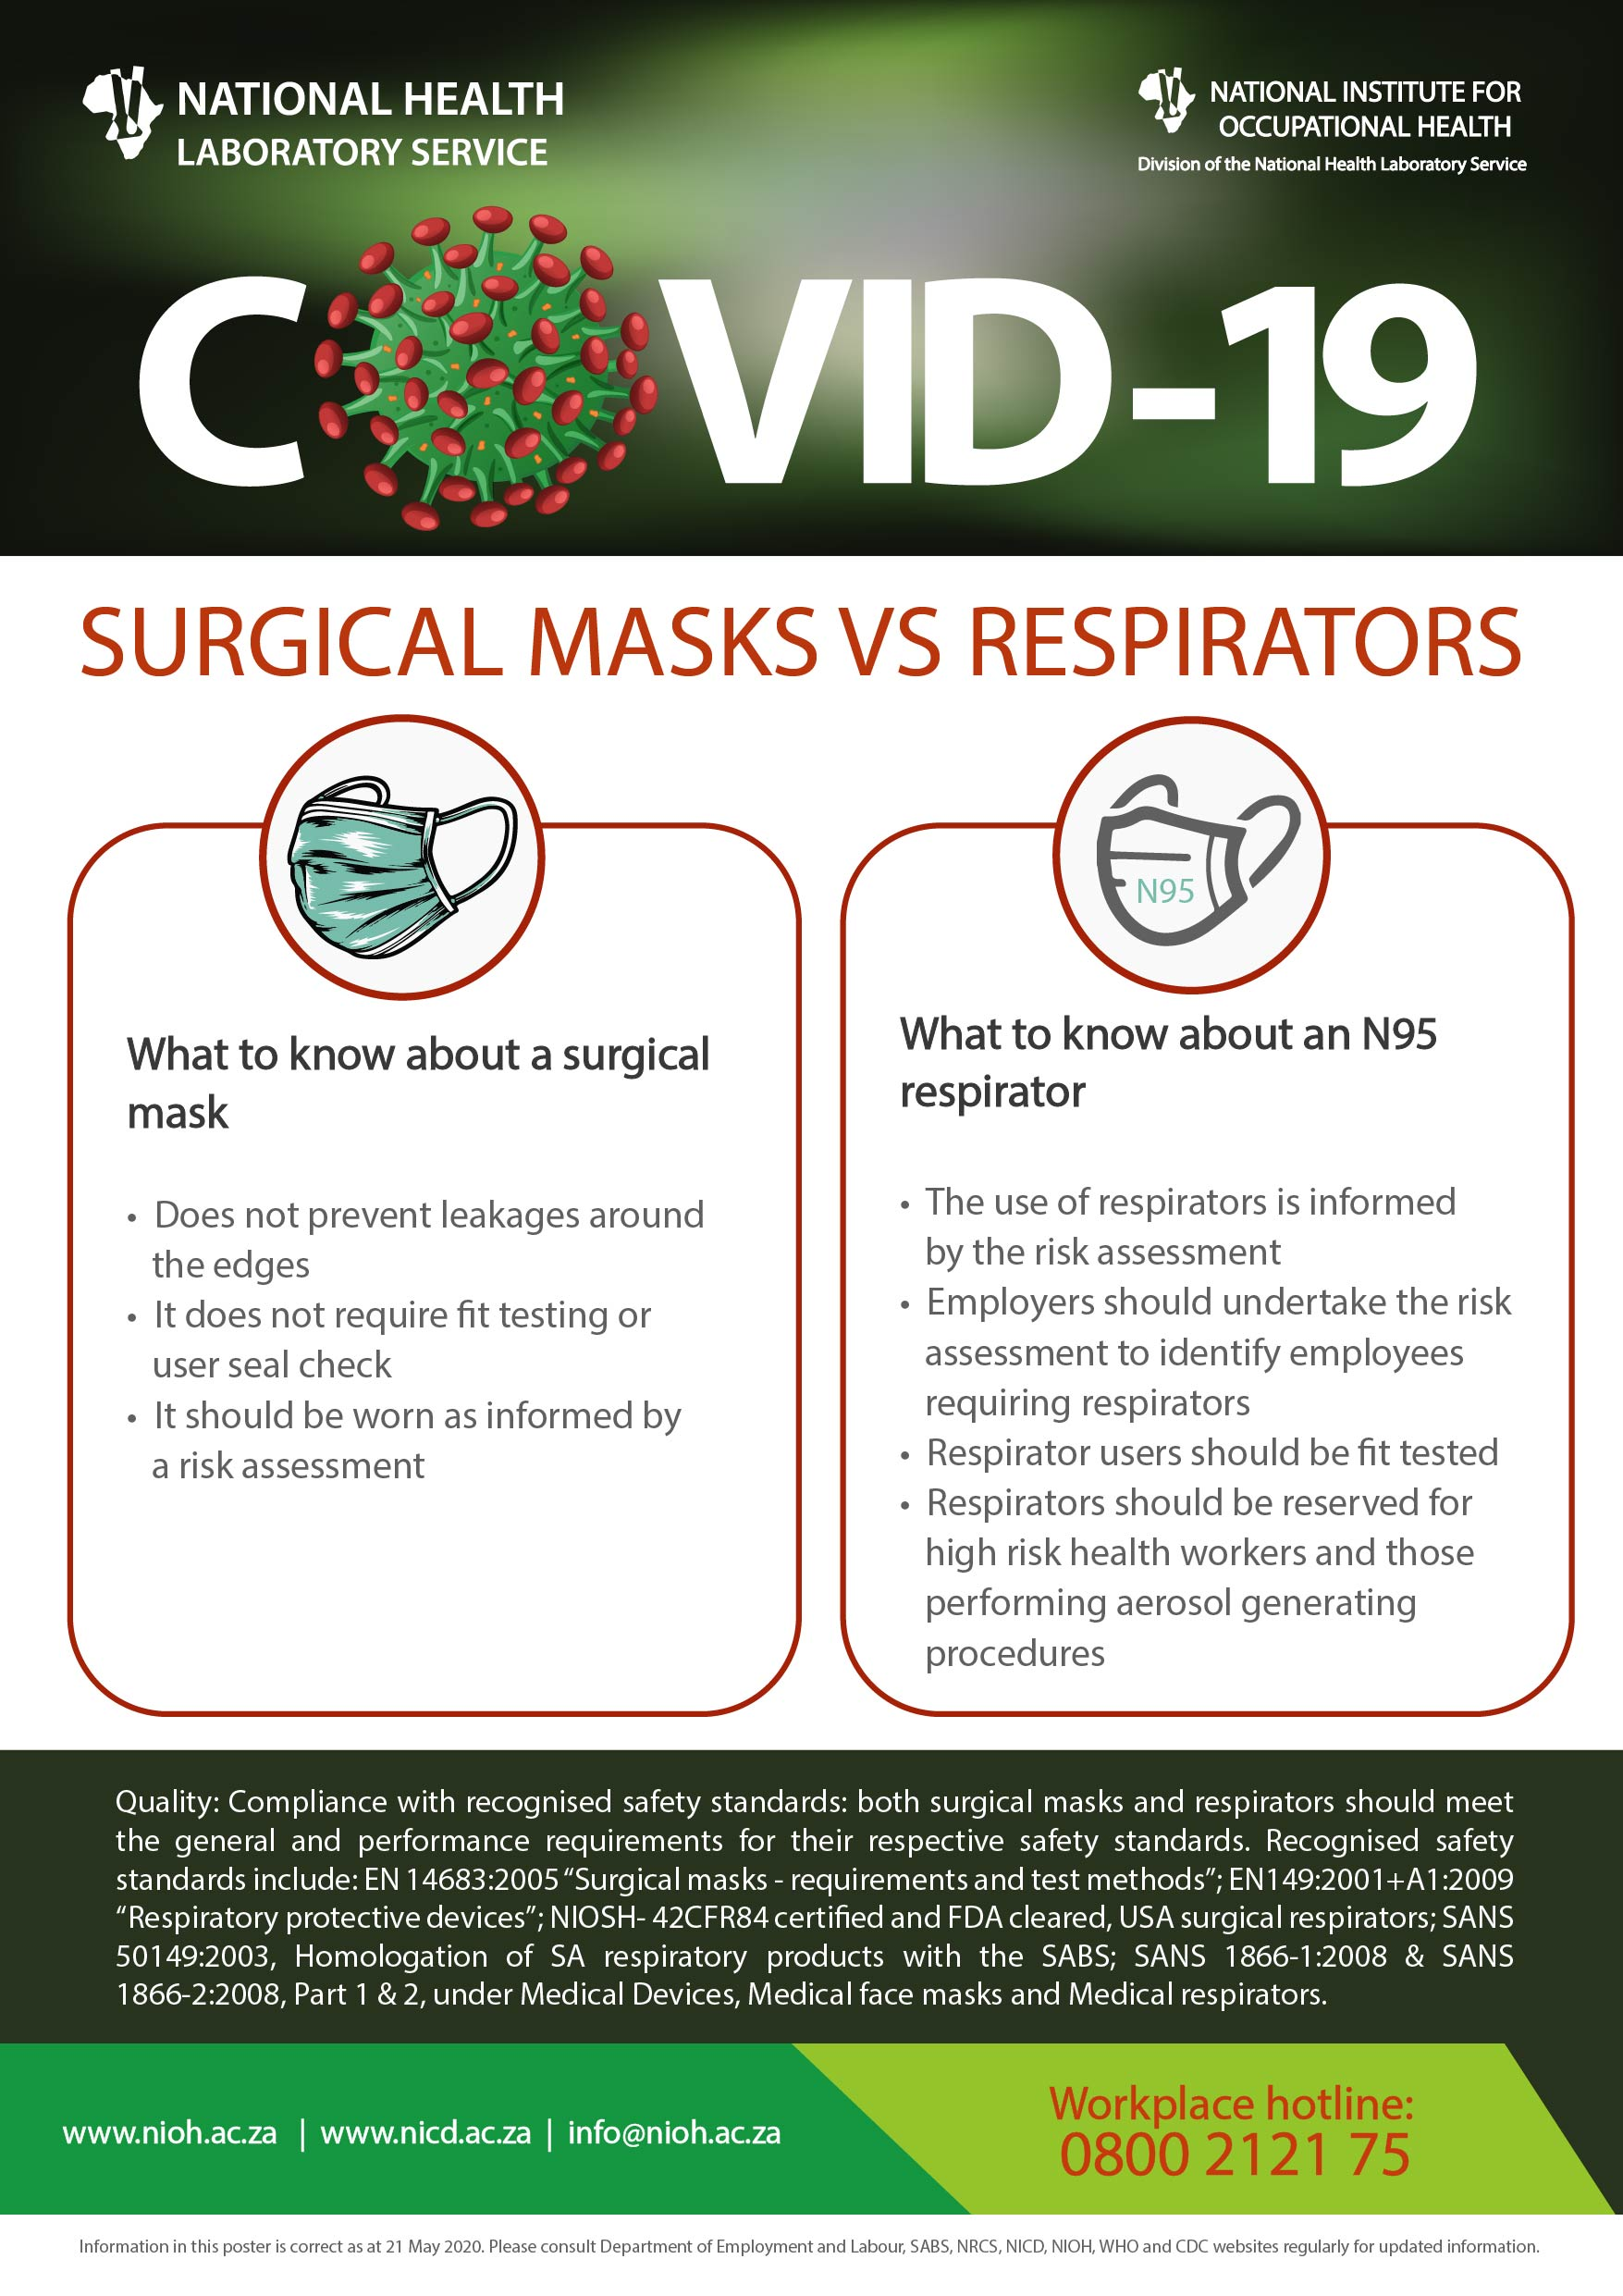 COVID-19 Surgical masks vs Respirators